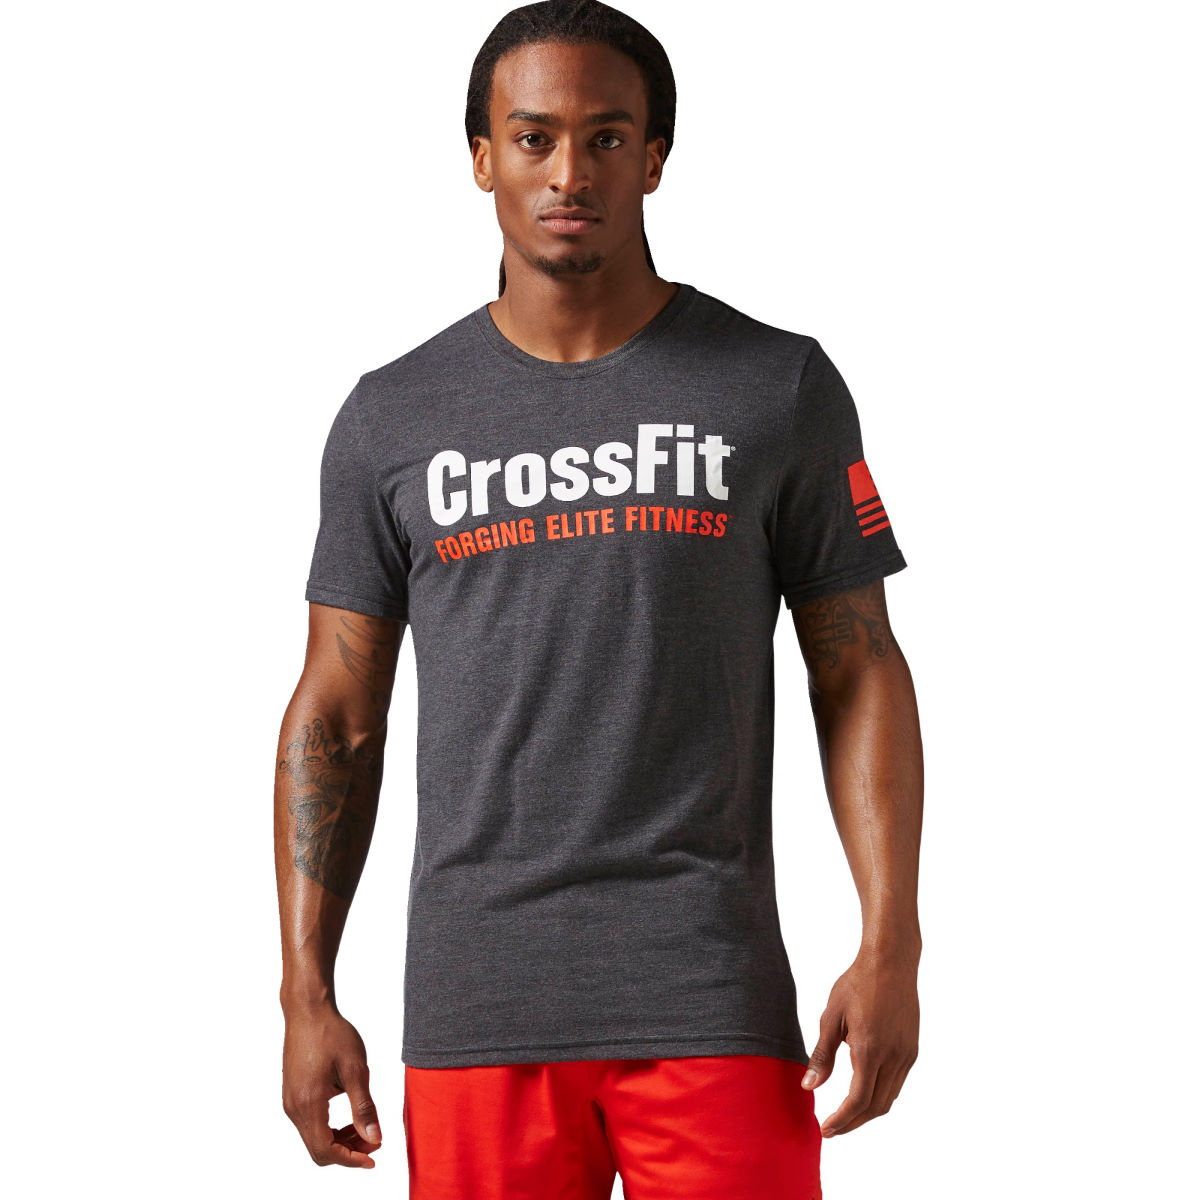 Reebok CrossFit Forging Elite Fitness Tee (AW16) - Extra Extra Large